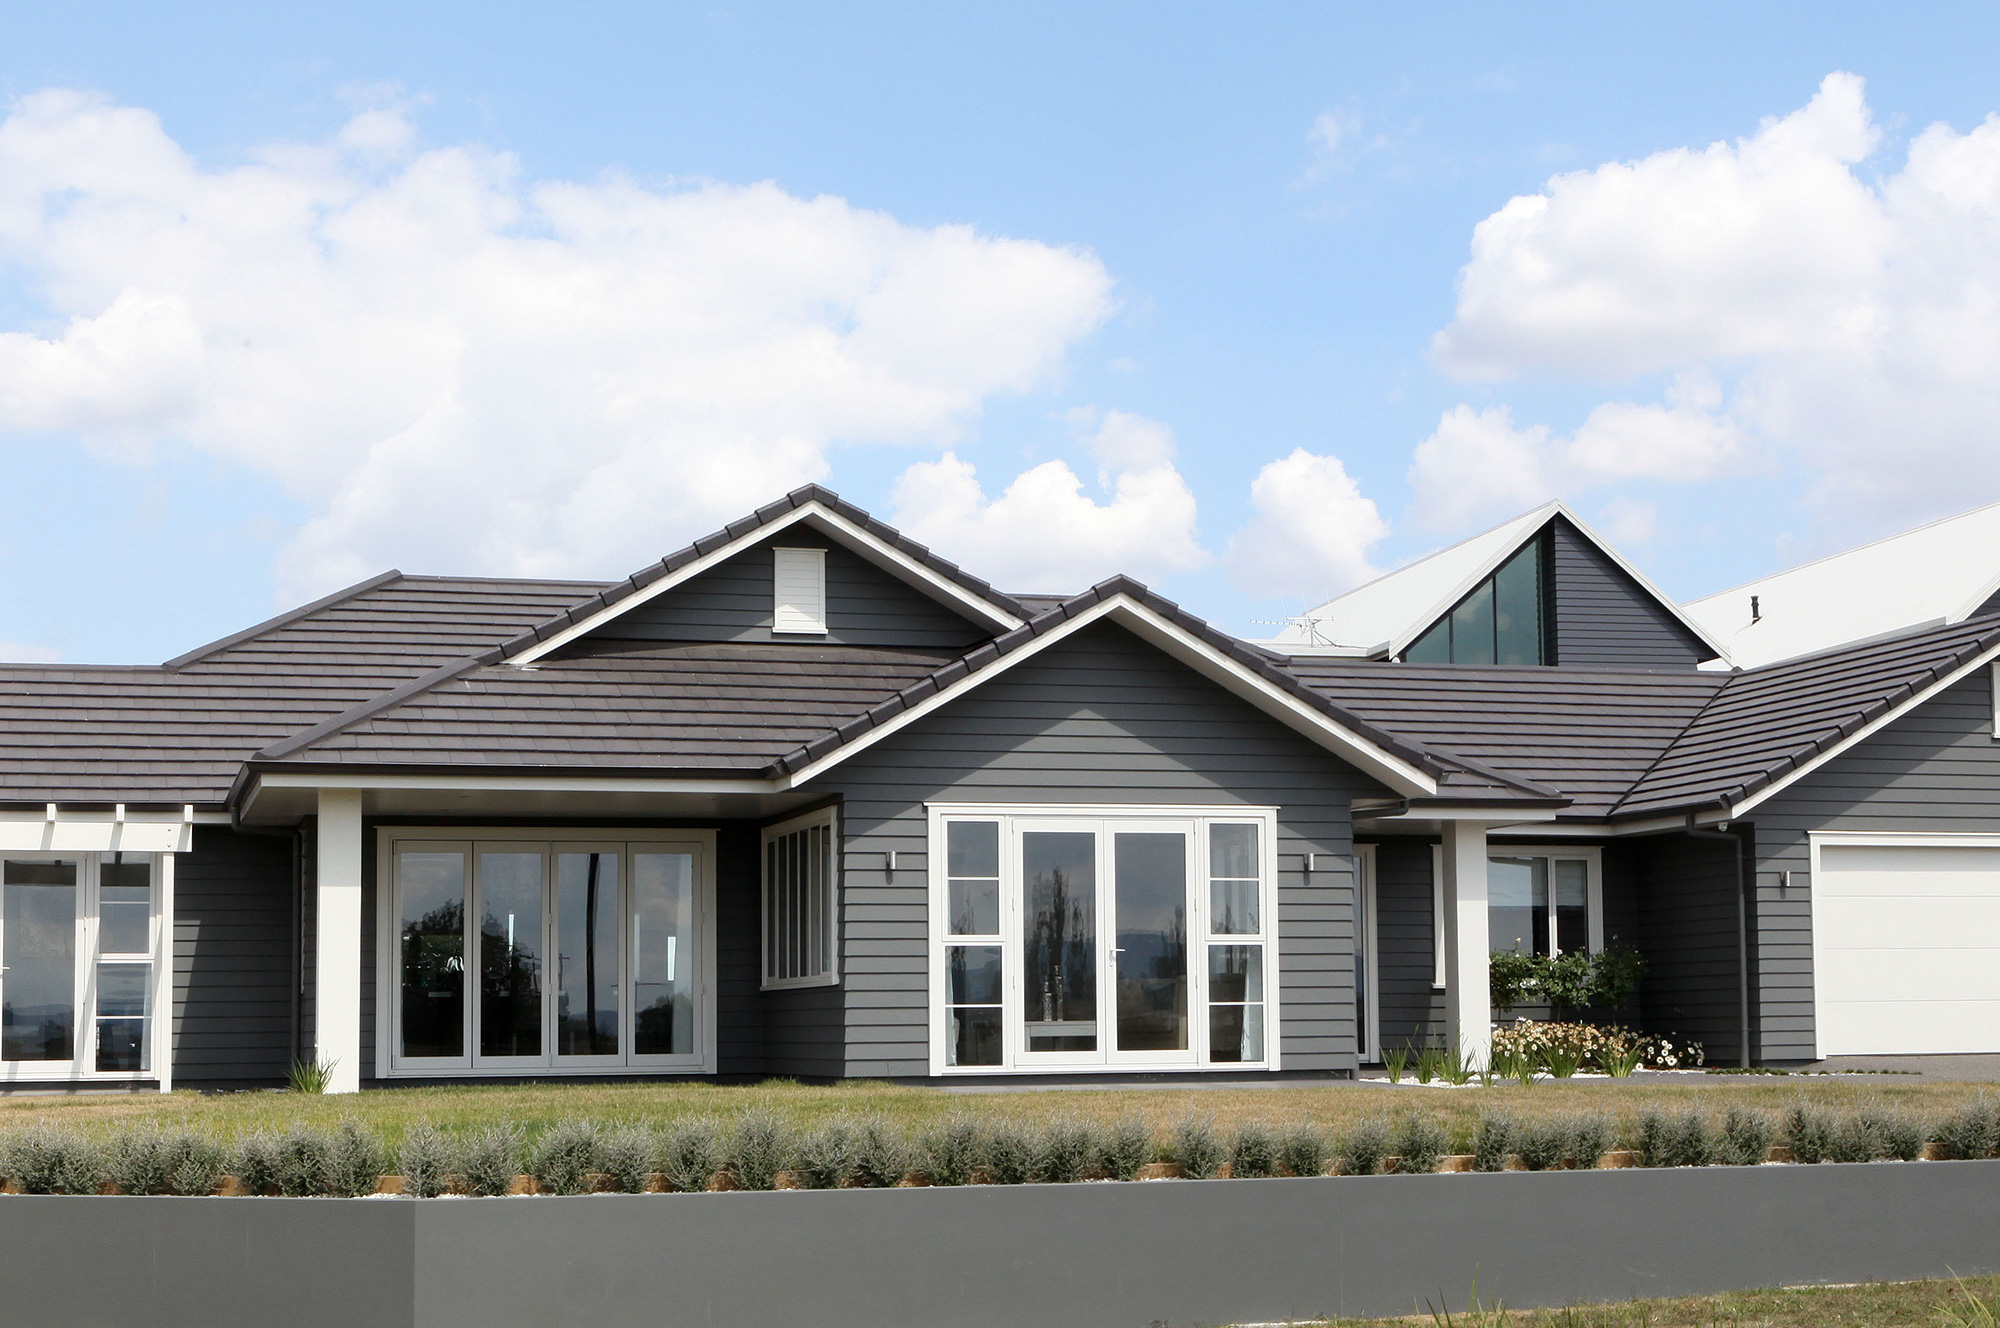 Christchurch Roofers. Canterbury Commercial Roofers, Odonnell Brick and TileRoofing Contractors Christchurch, Odonnell Brick and TileChristchurch Roofing Company, Odonnell Brick and Tile